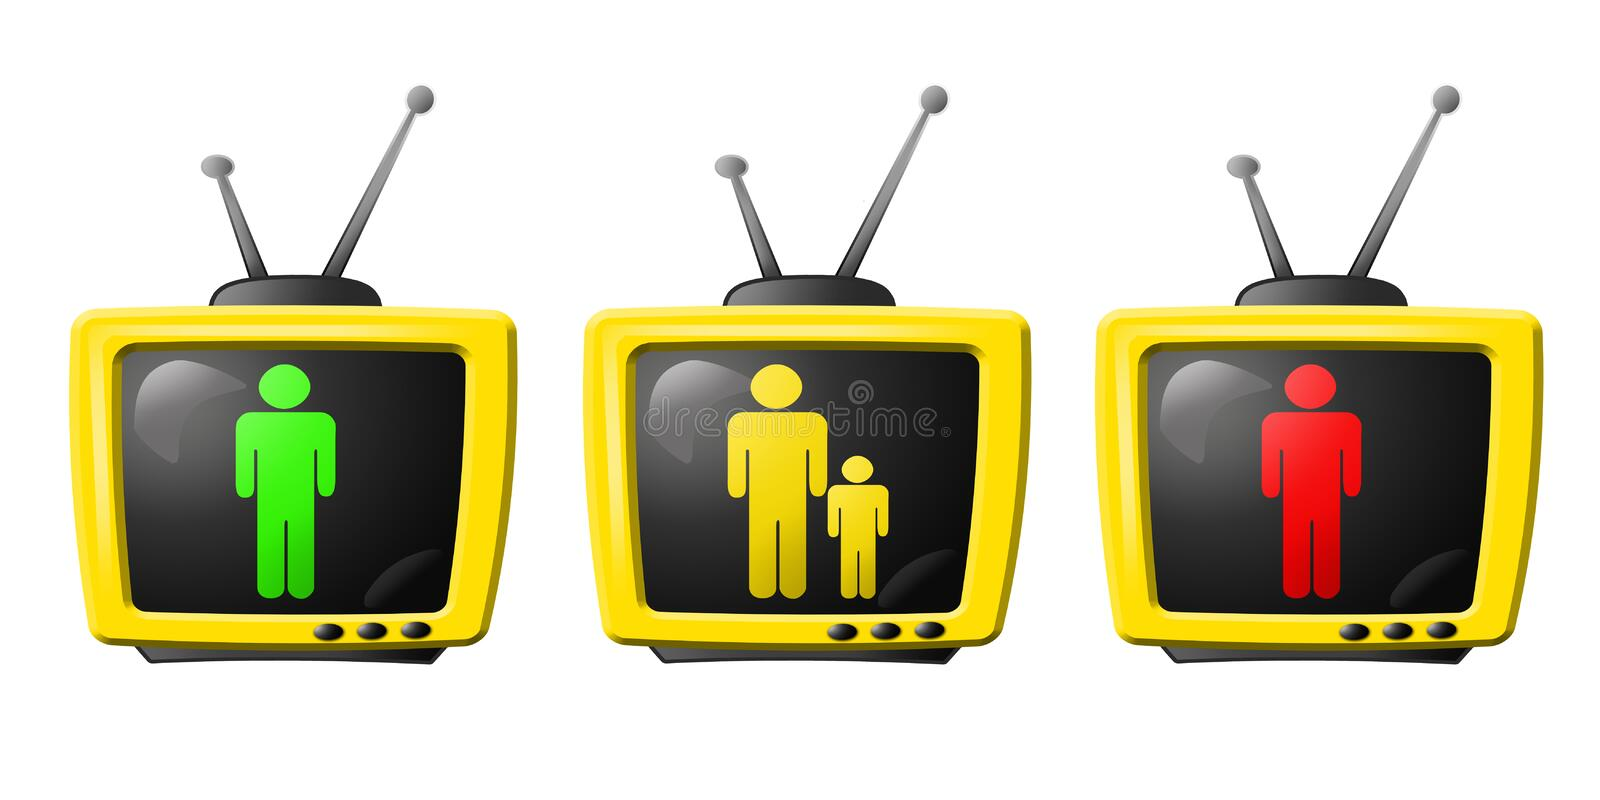 Tv Parental Control Royalty Free Stock Photo